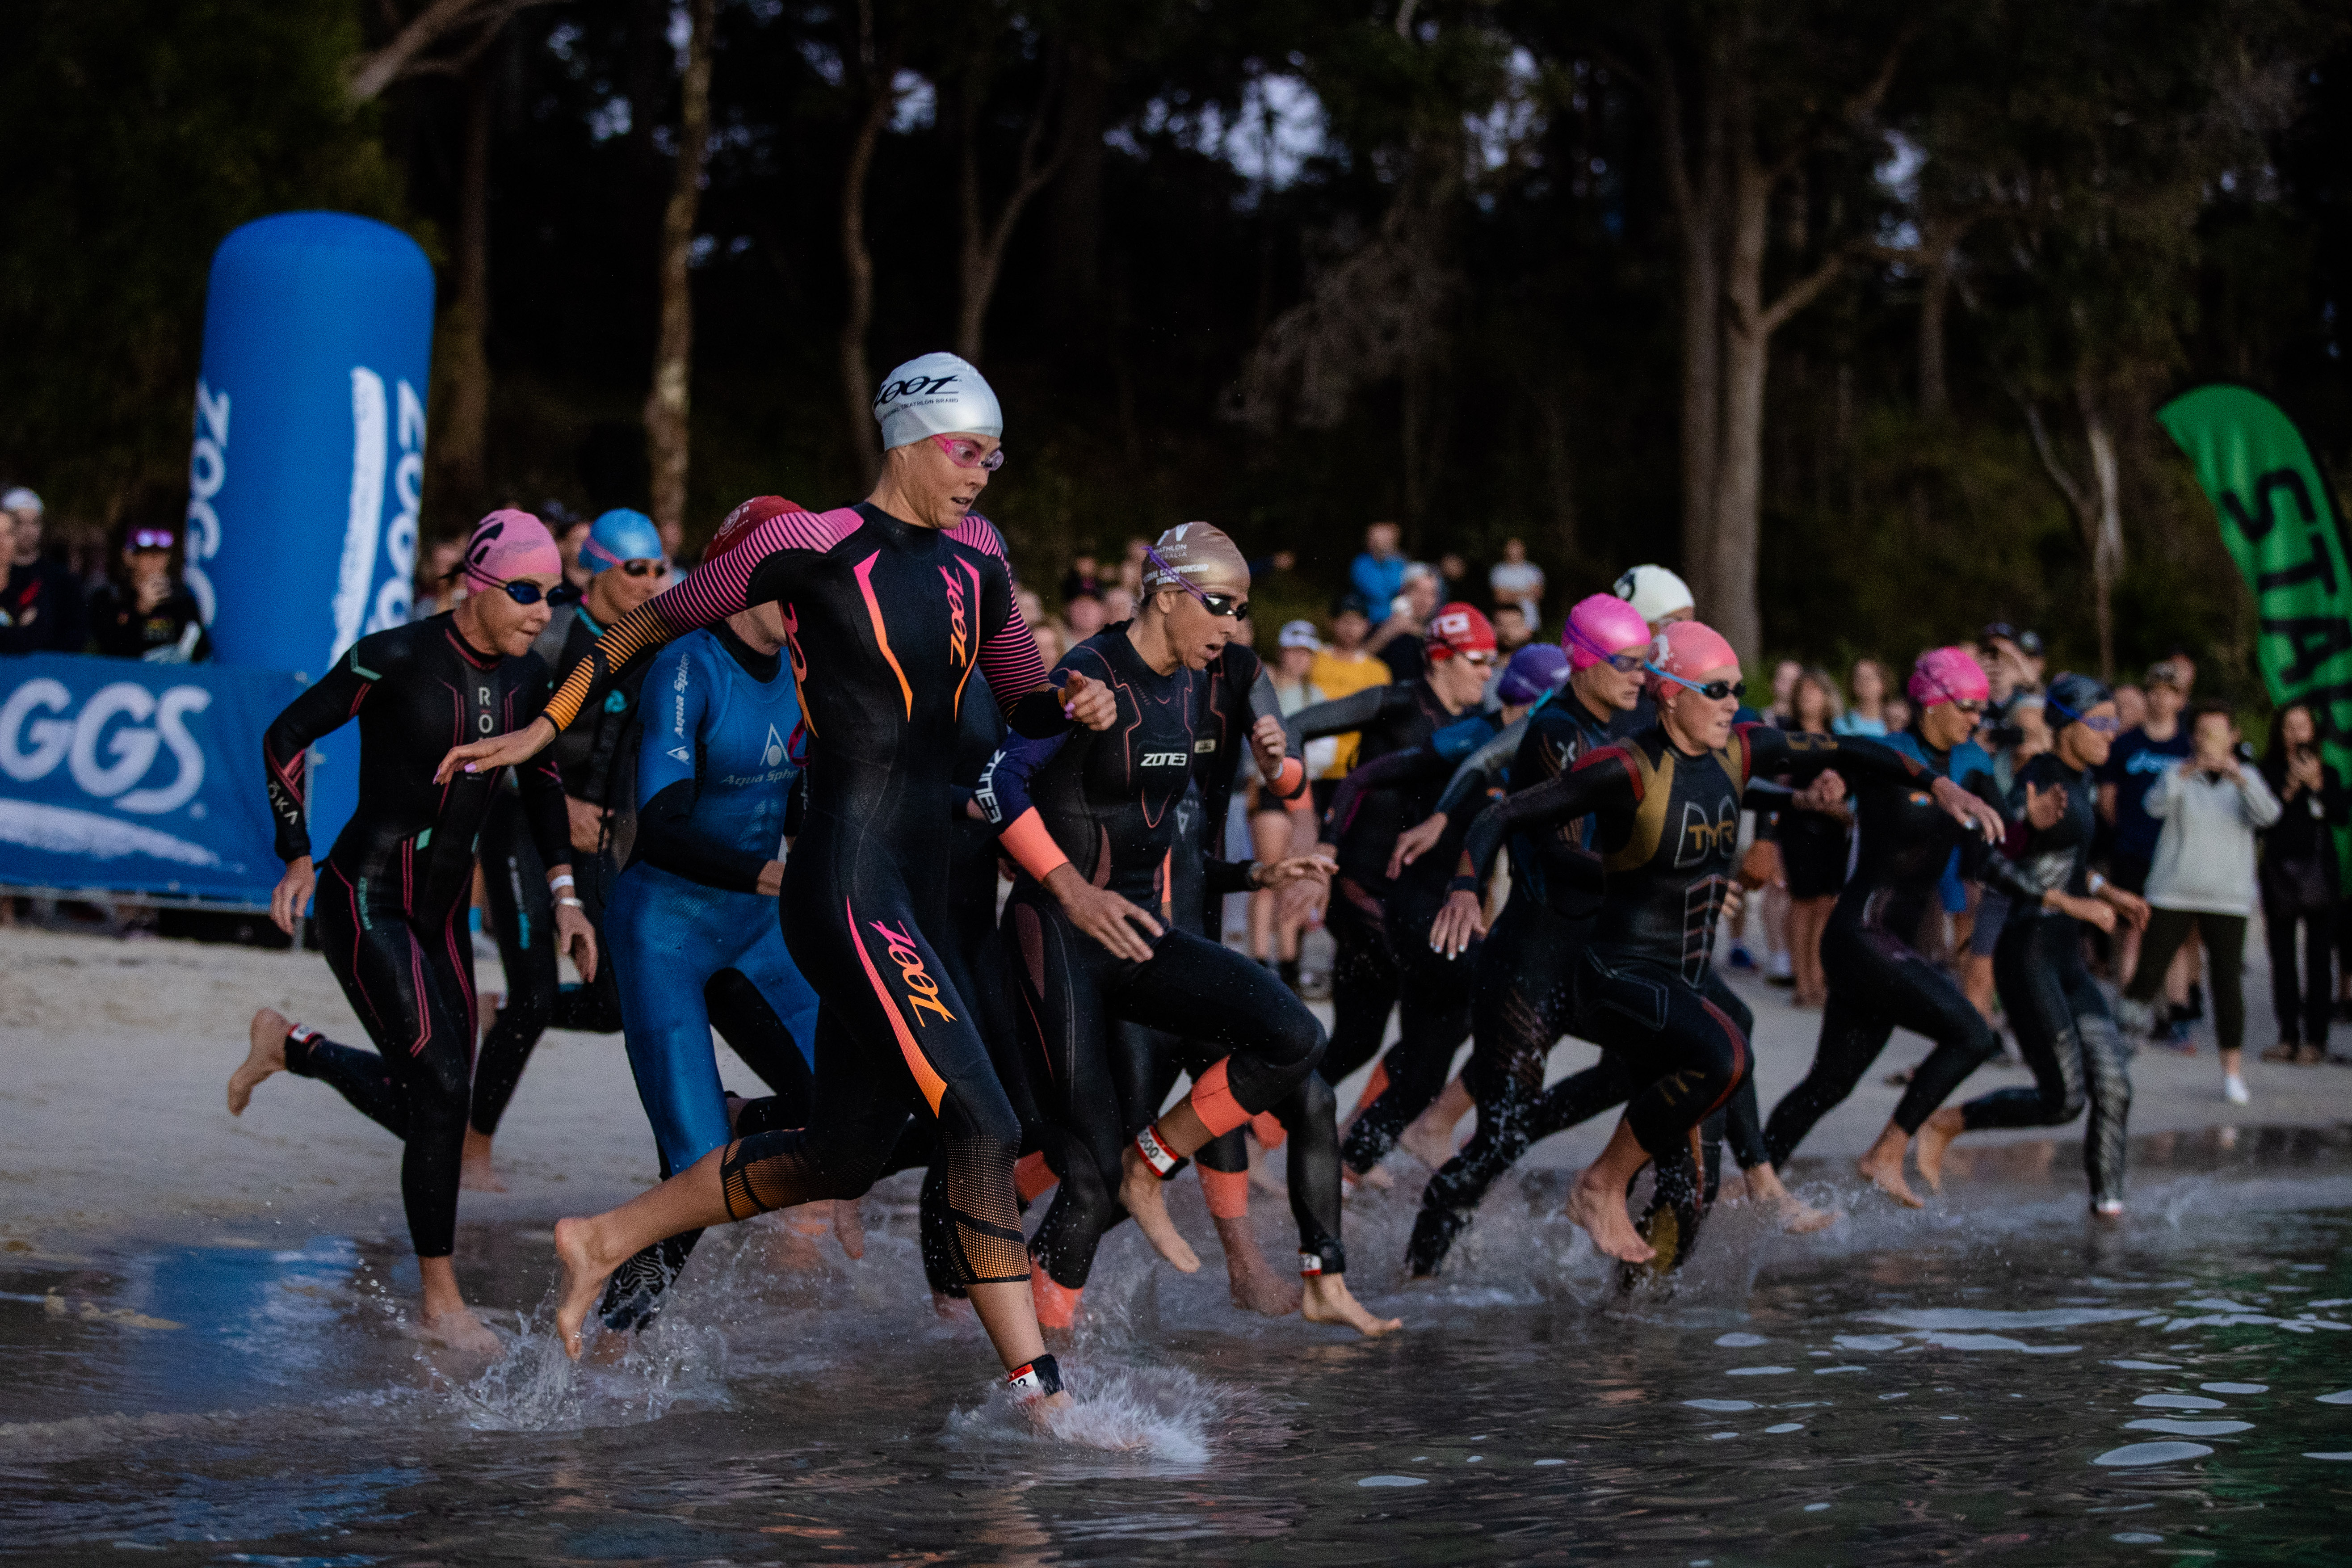 Running successful events in an unpredictable world